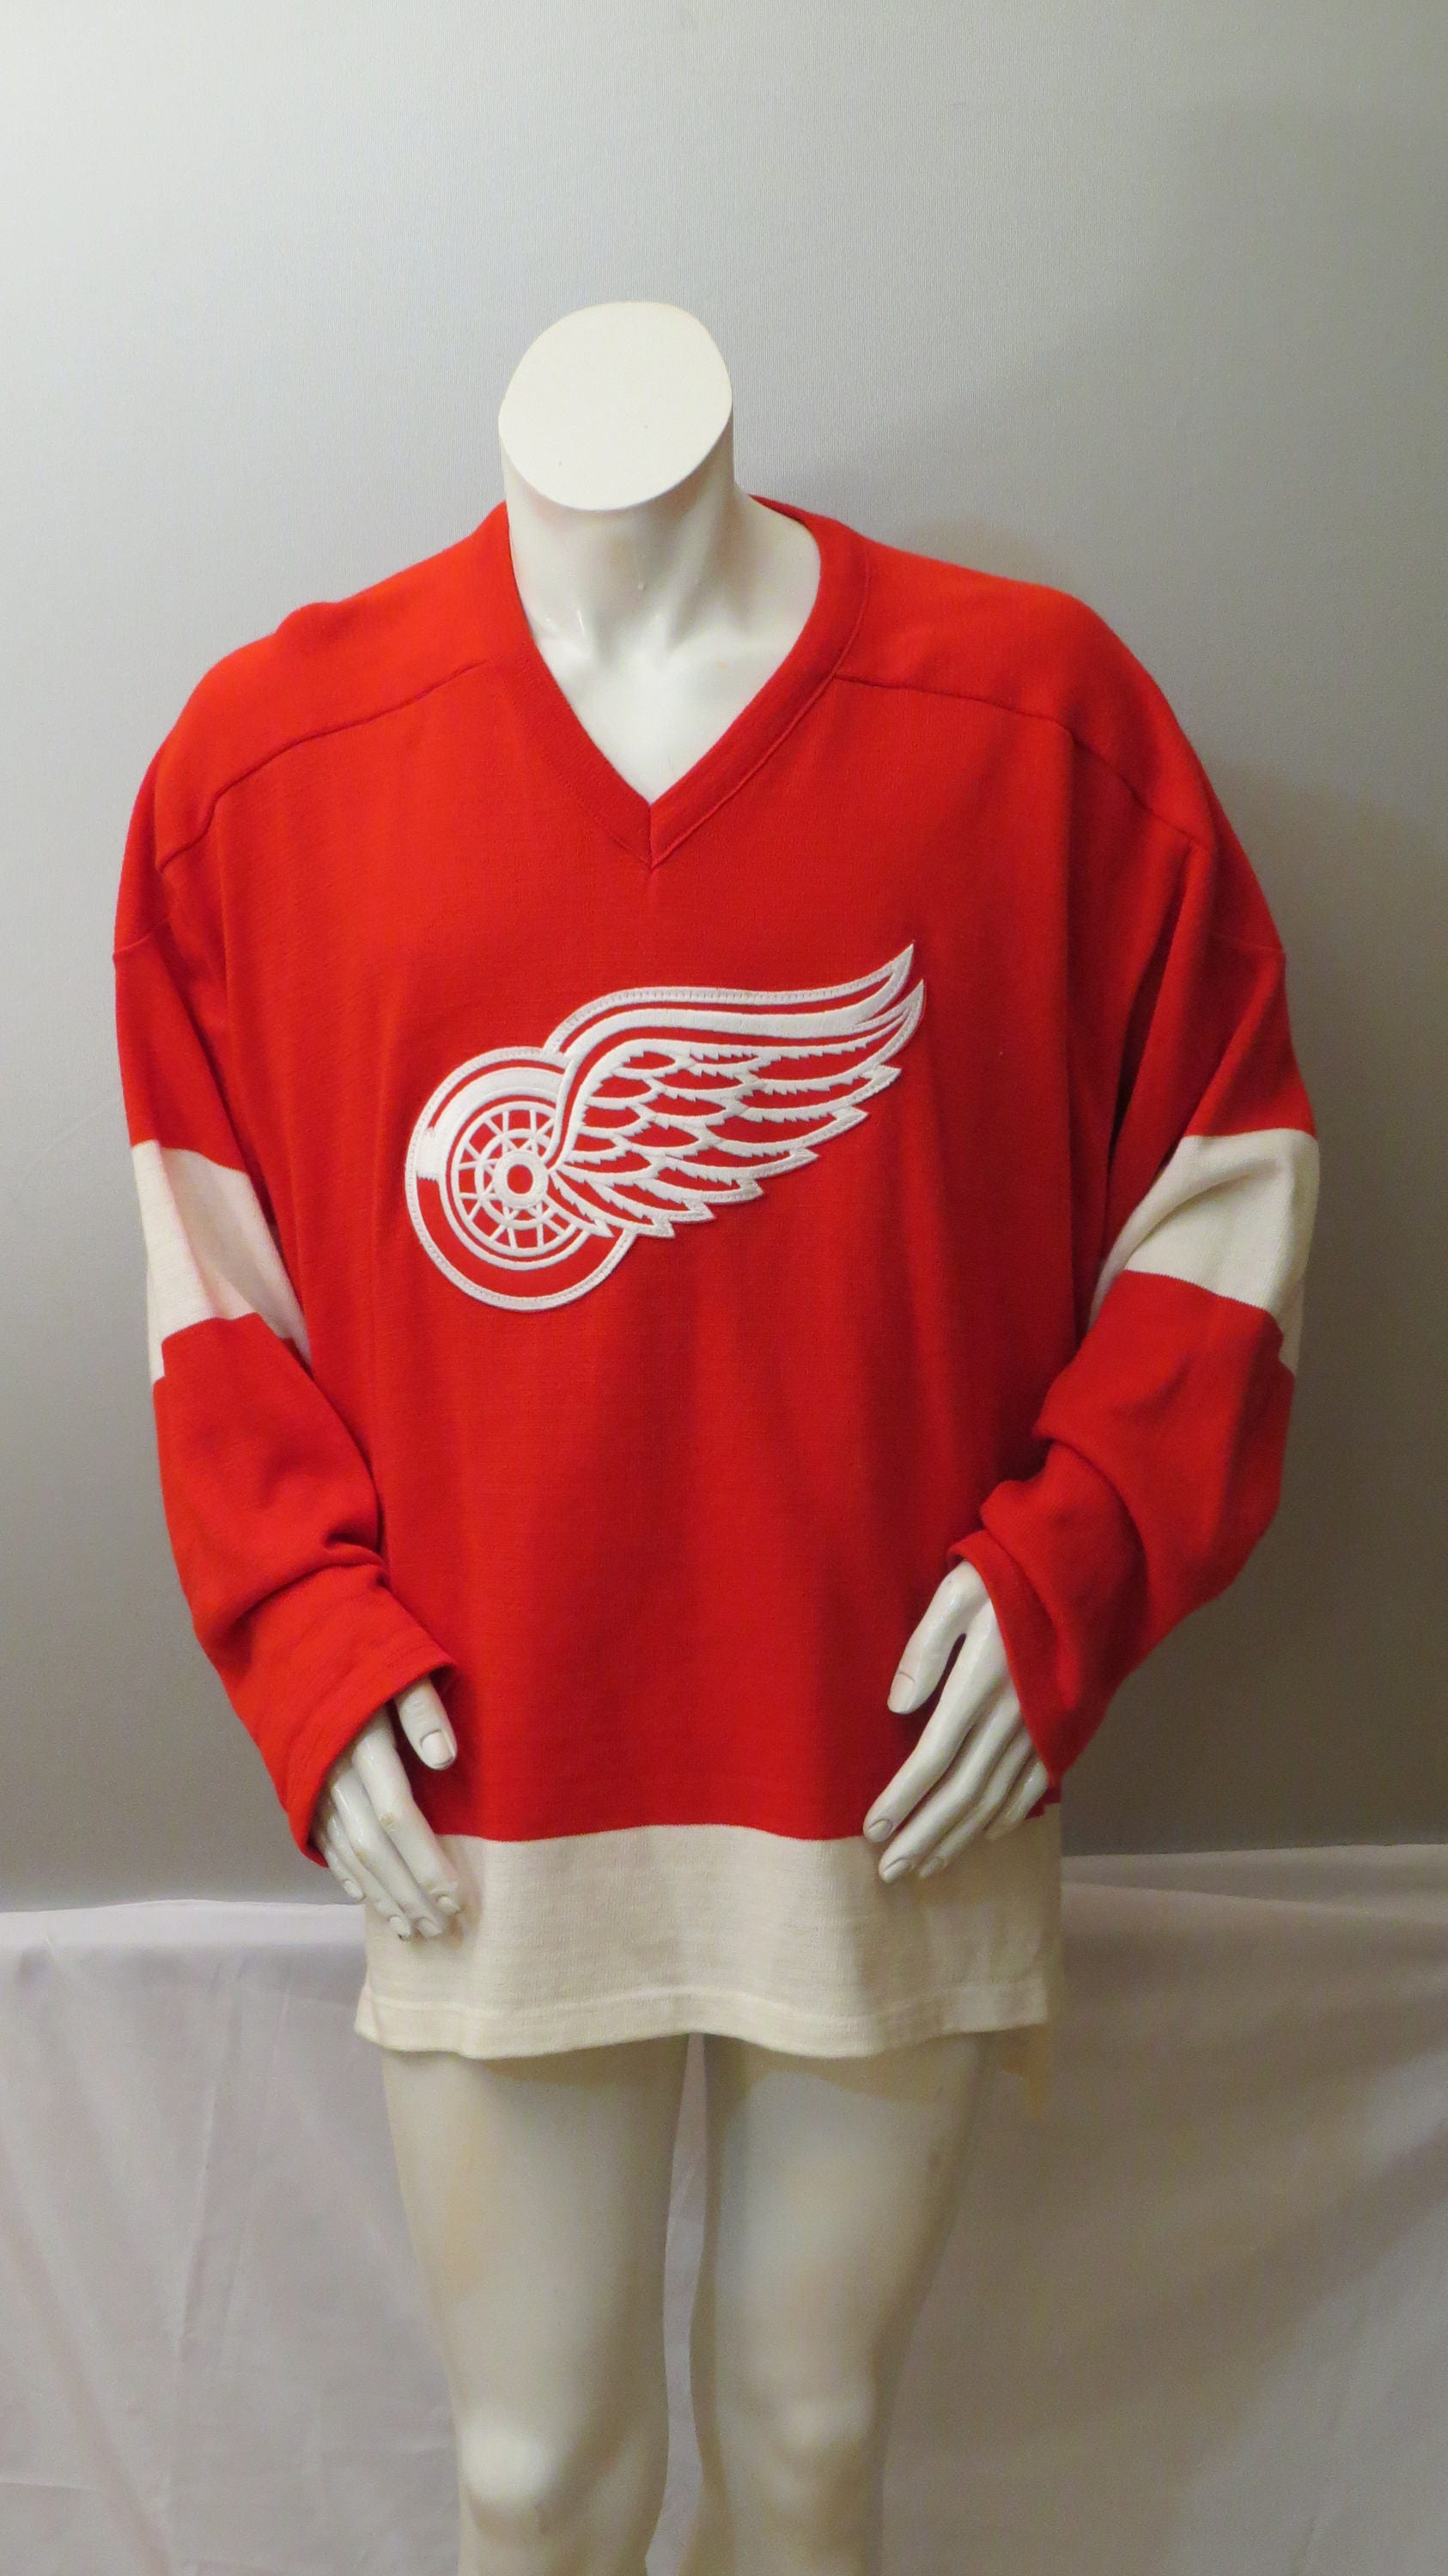 separation shoes 940ad a2da8 retro red wings jersey